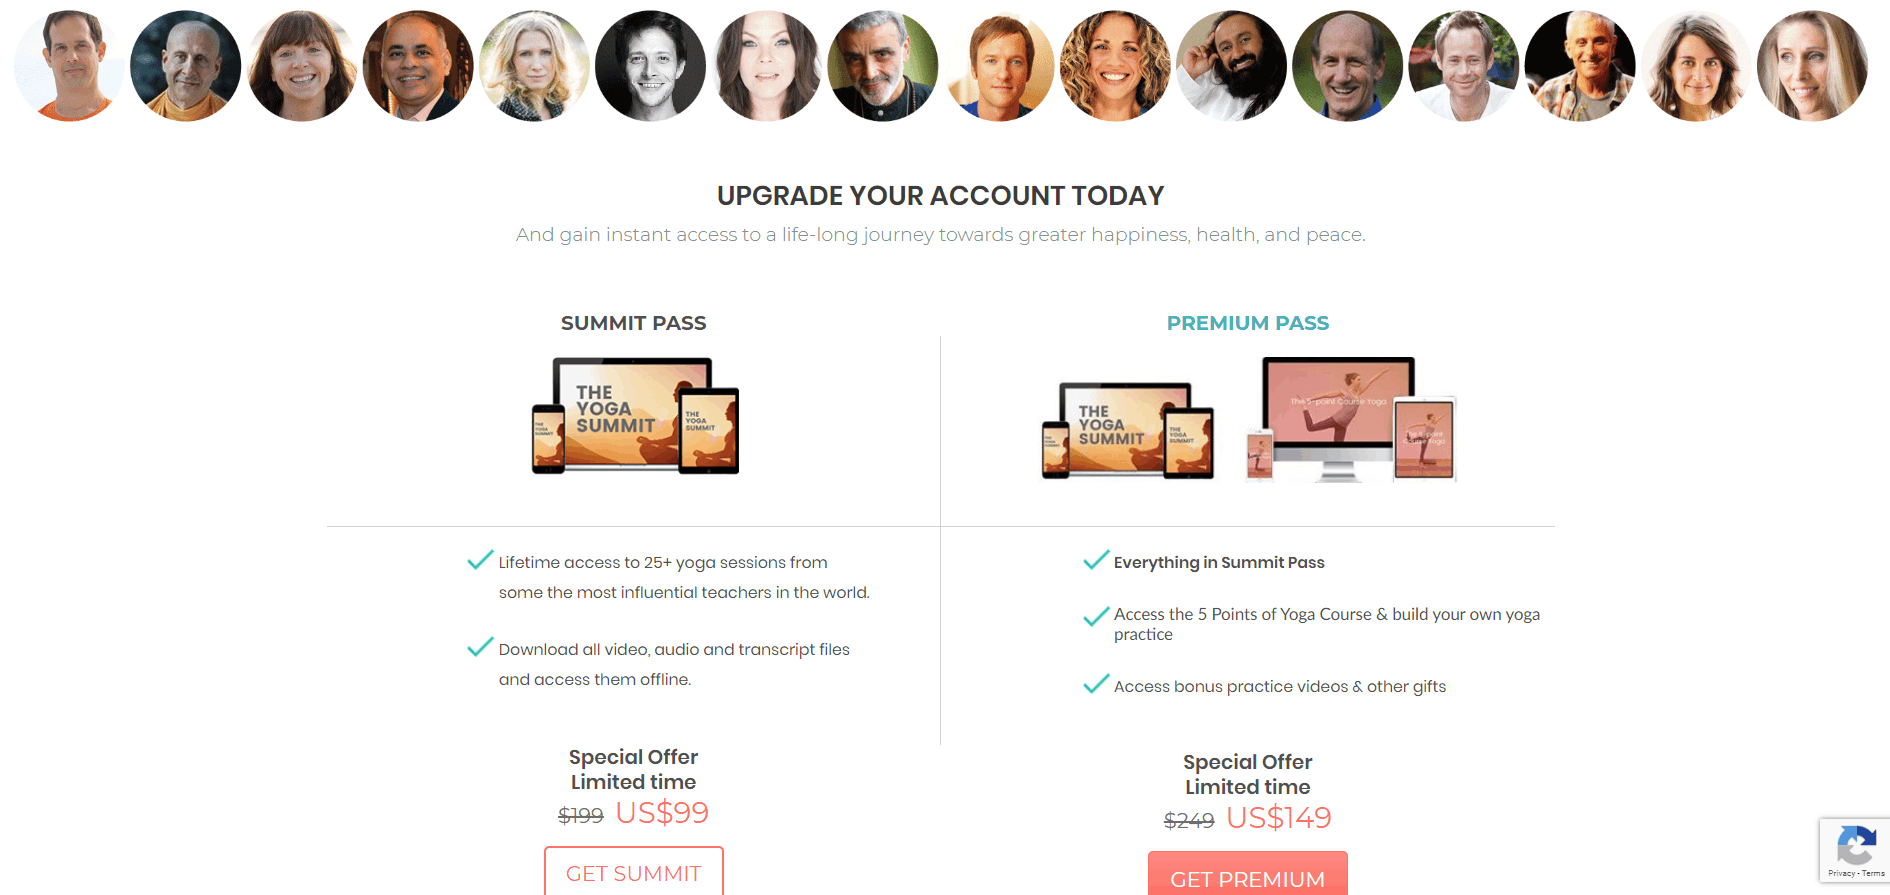 Image of Virtual Event or Online Summit Speakers line-up with call to action for Premium Access upgrade and access recordings